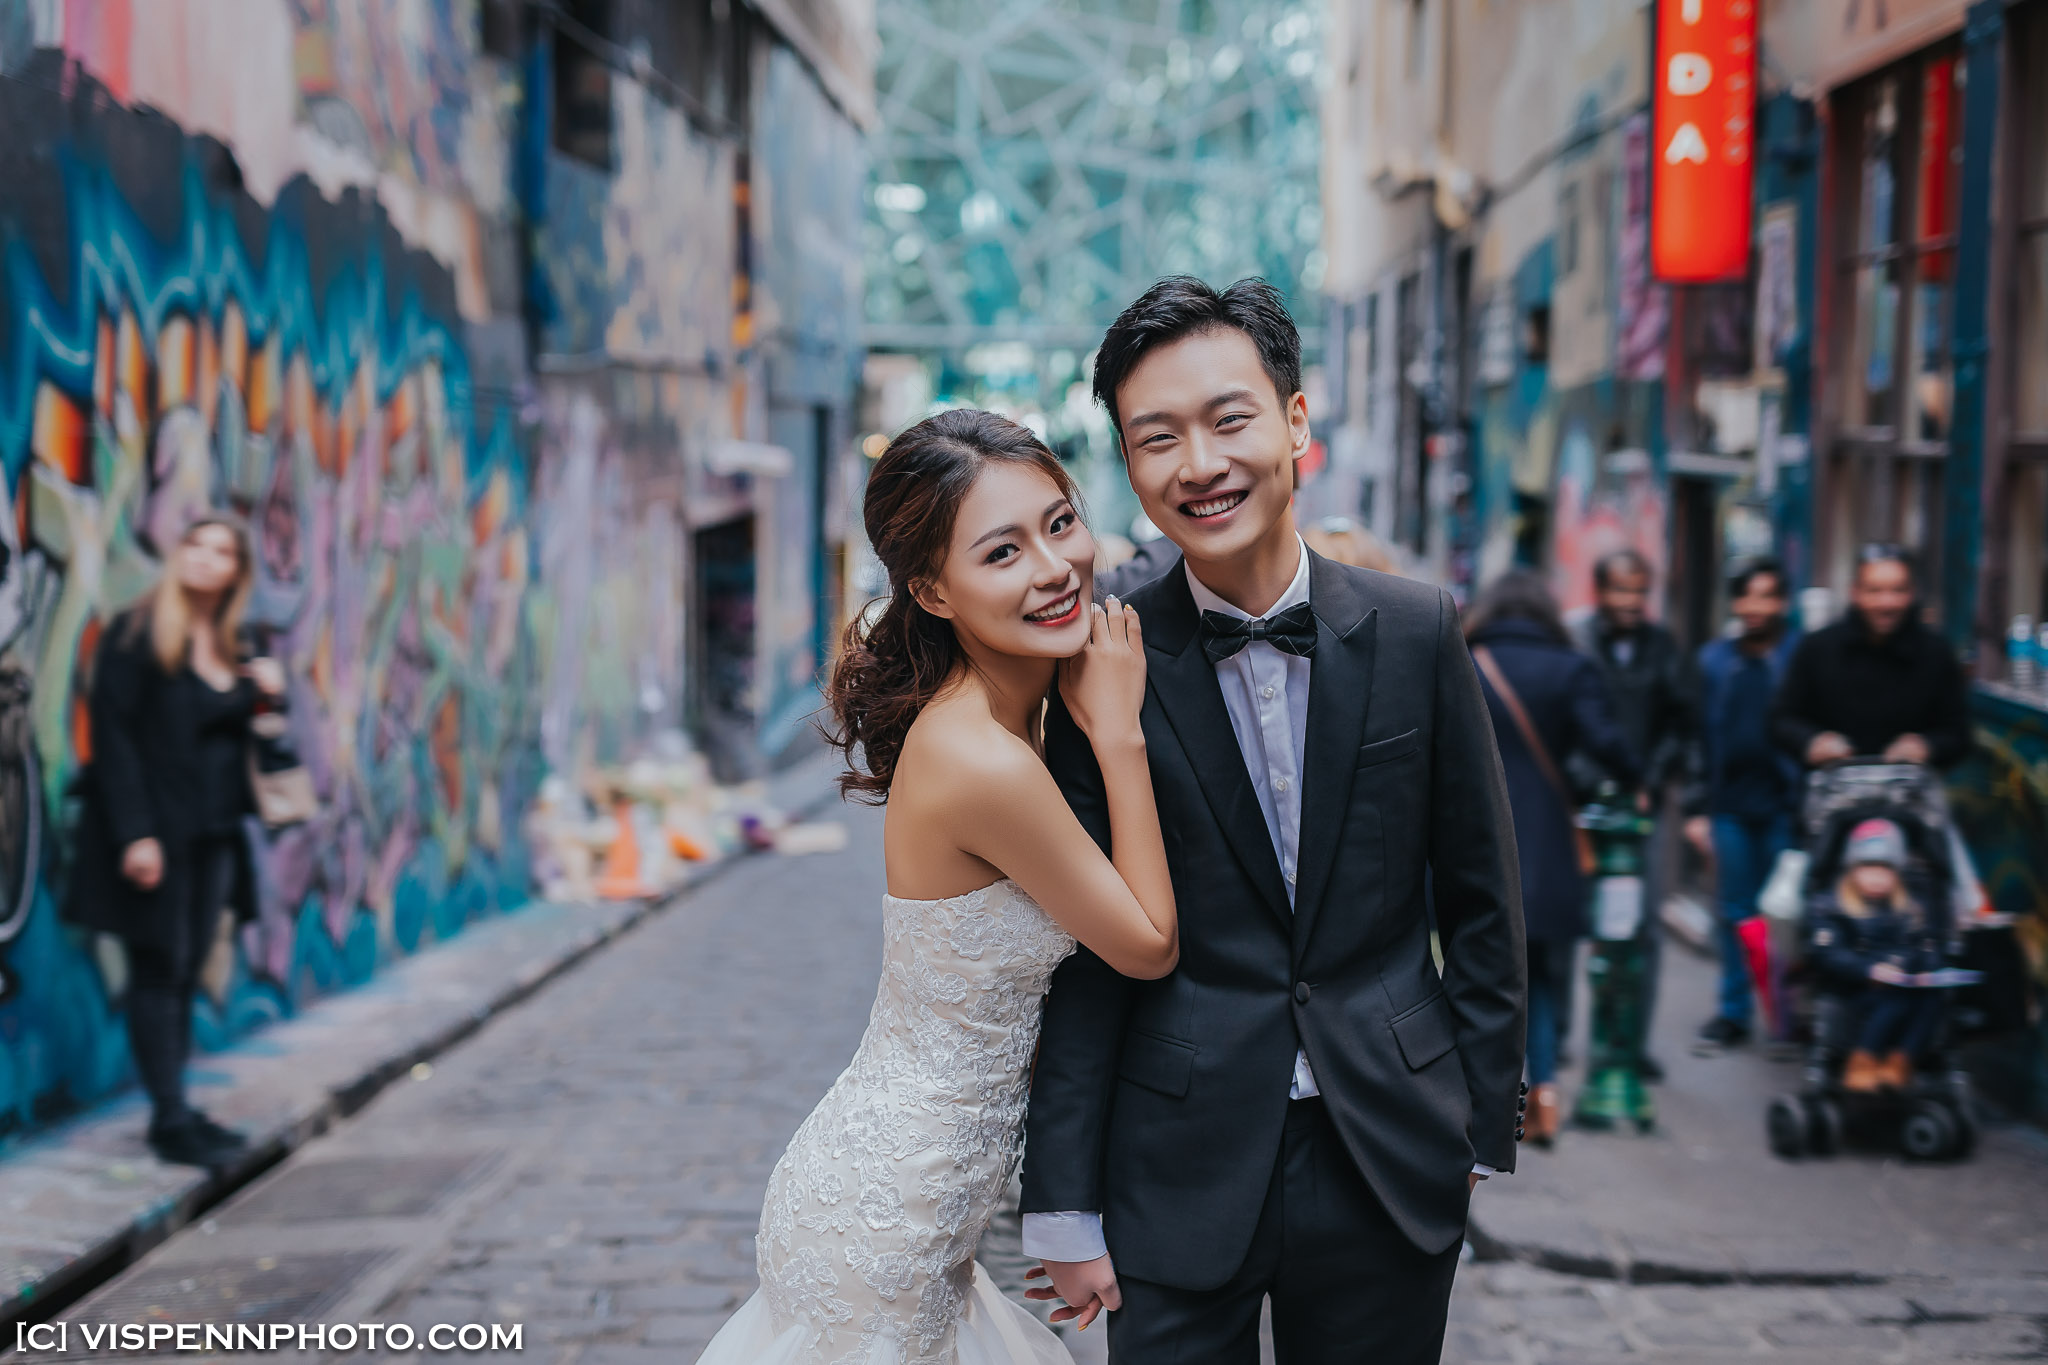 PRE WEDDING Photography Melbourne 5D5 4209